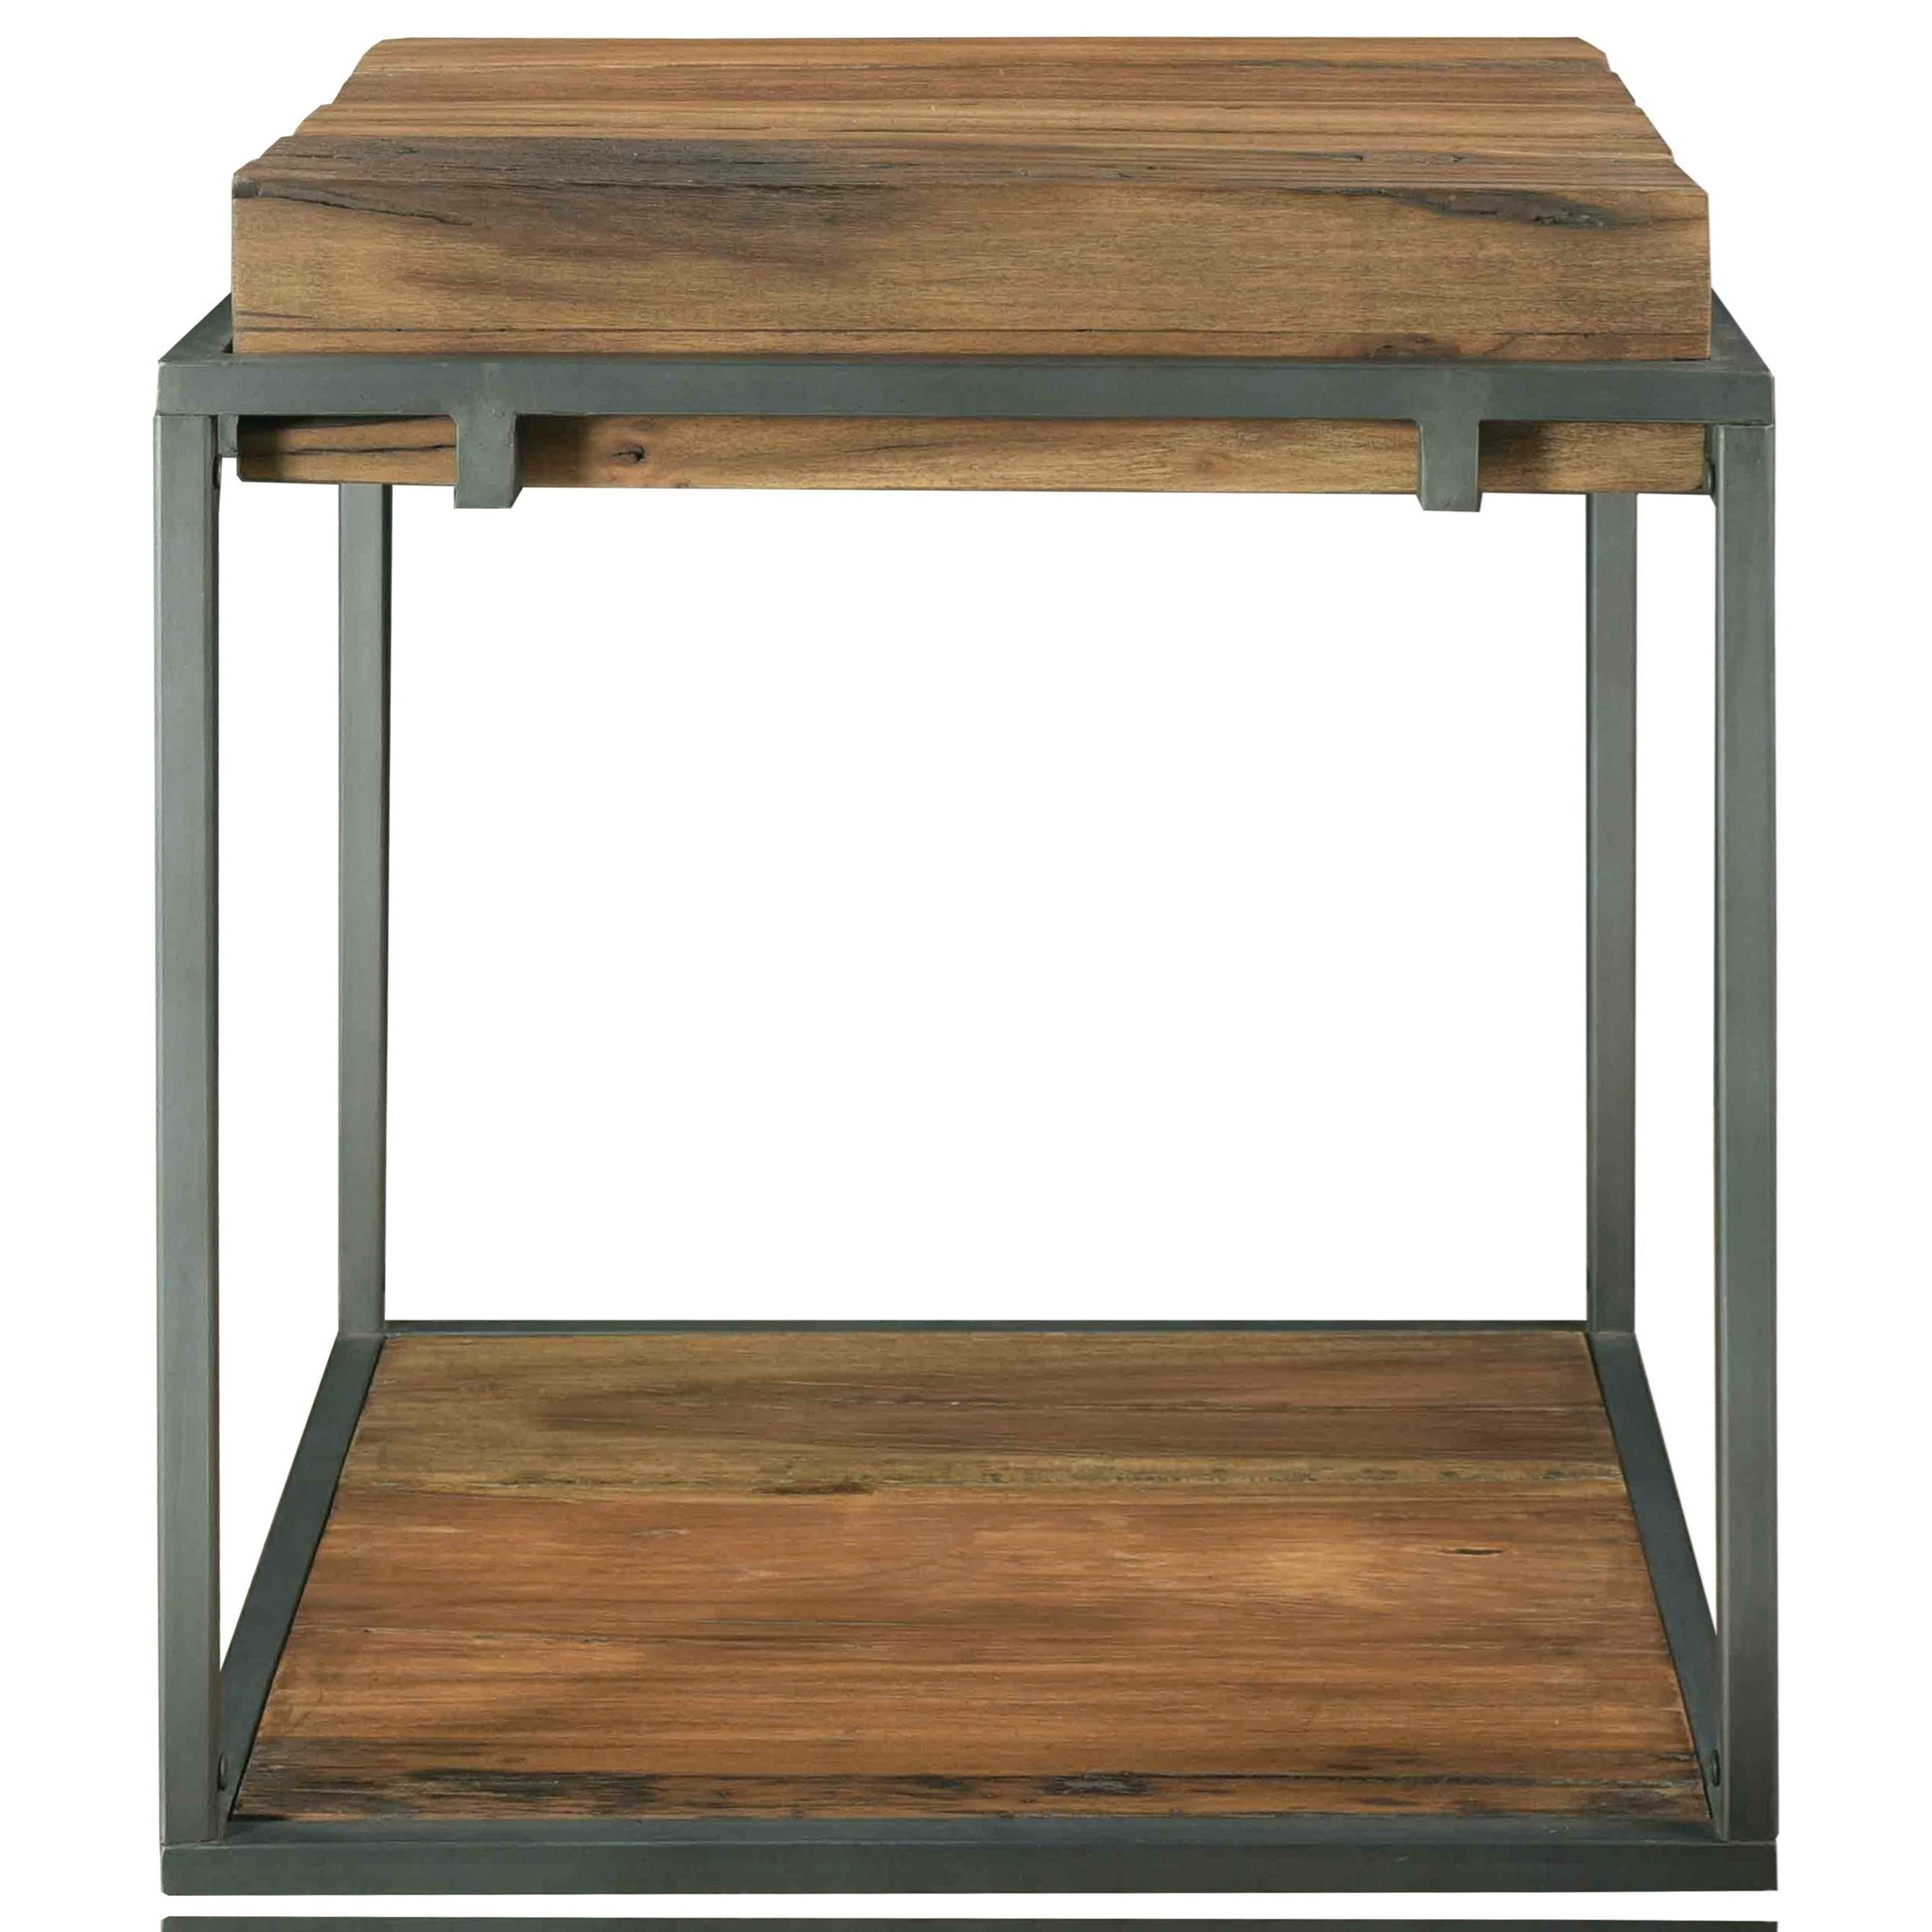 Industrial furniture table Industrial Board Room Square Side Table Custommadecom Riverside Furniture Maverick Industrial Square Side Table With